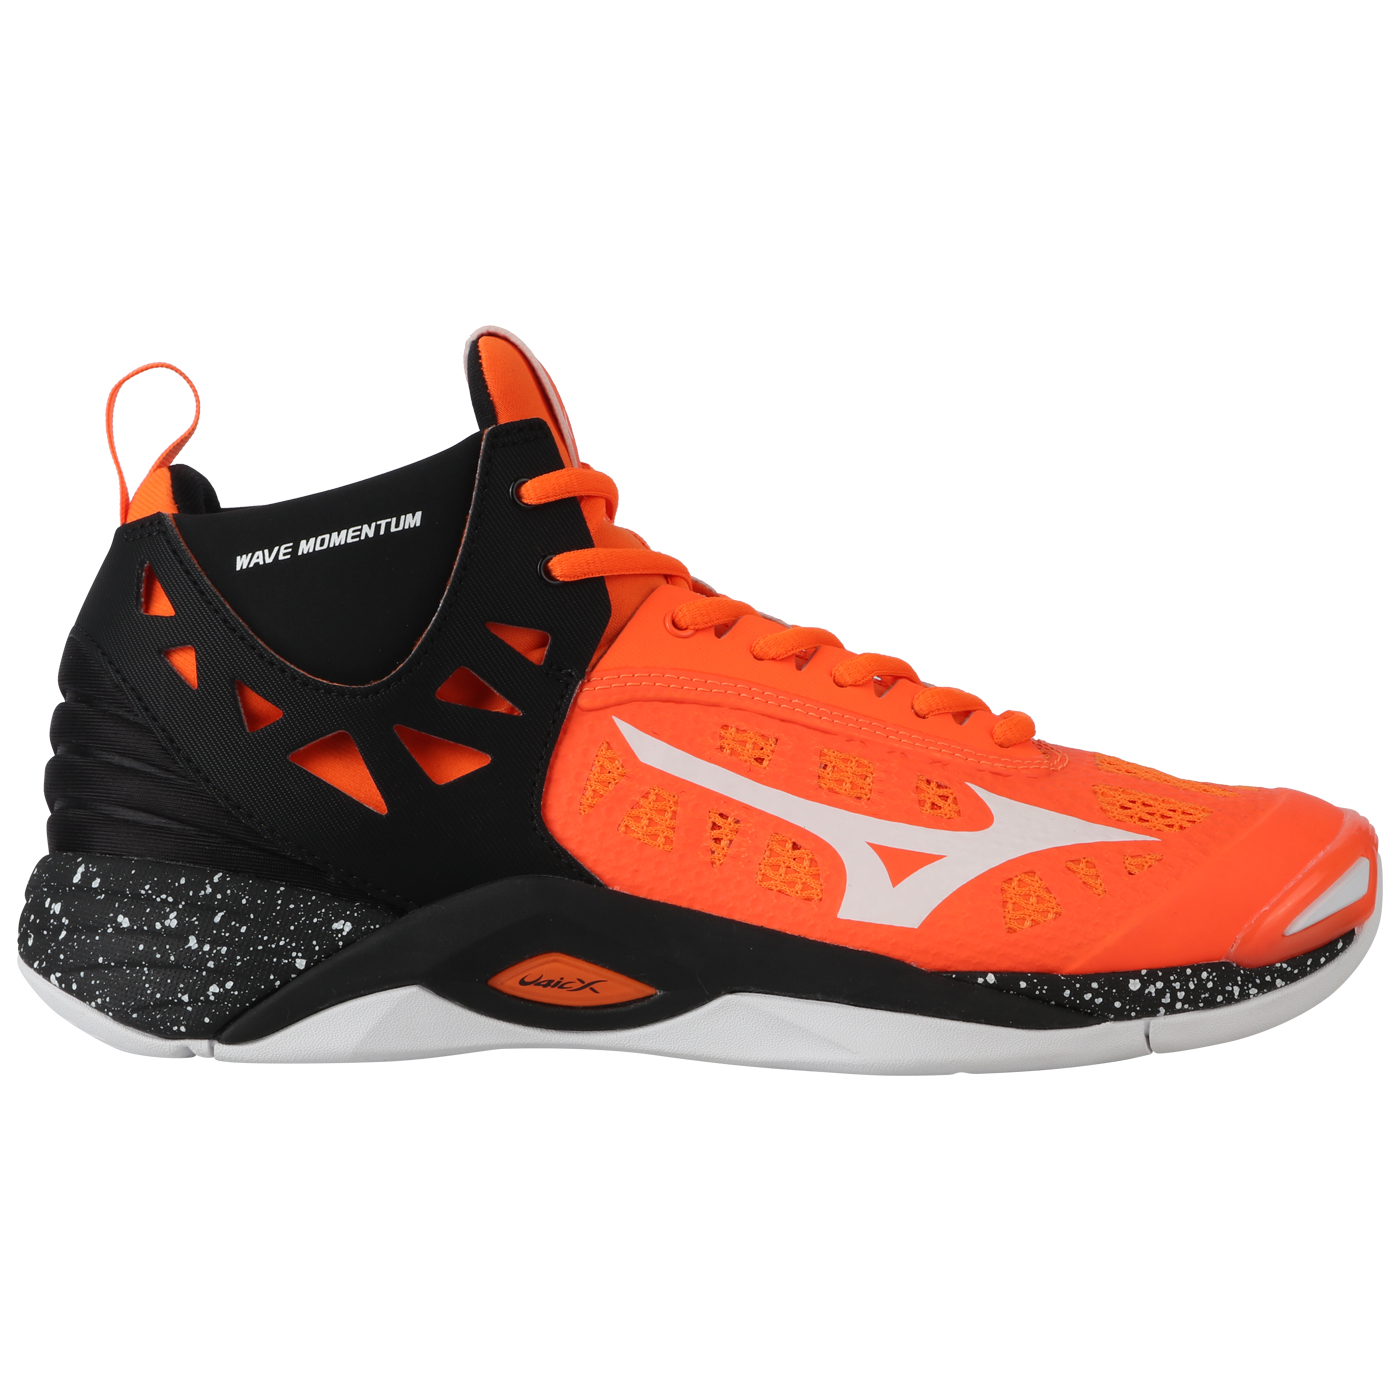 WAVE MOMENTUM MID - ORANGE CLOWN FISH/WHITE/BLACK